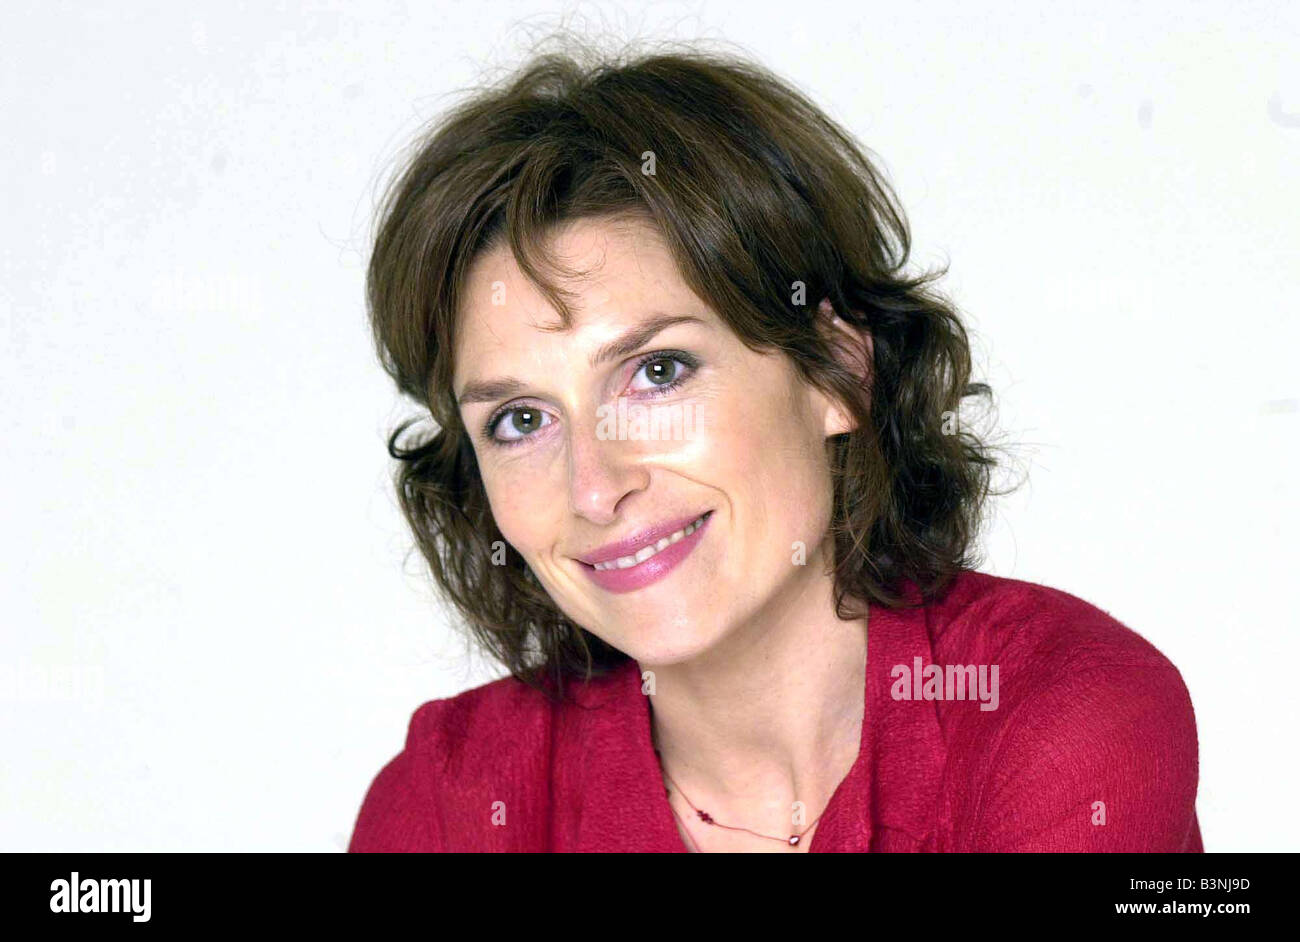 BBC actress Amelia Bullmore October 2002 in new series of Alan Partridge starting in autumn - Stock Image